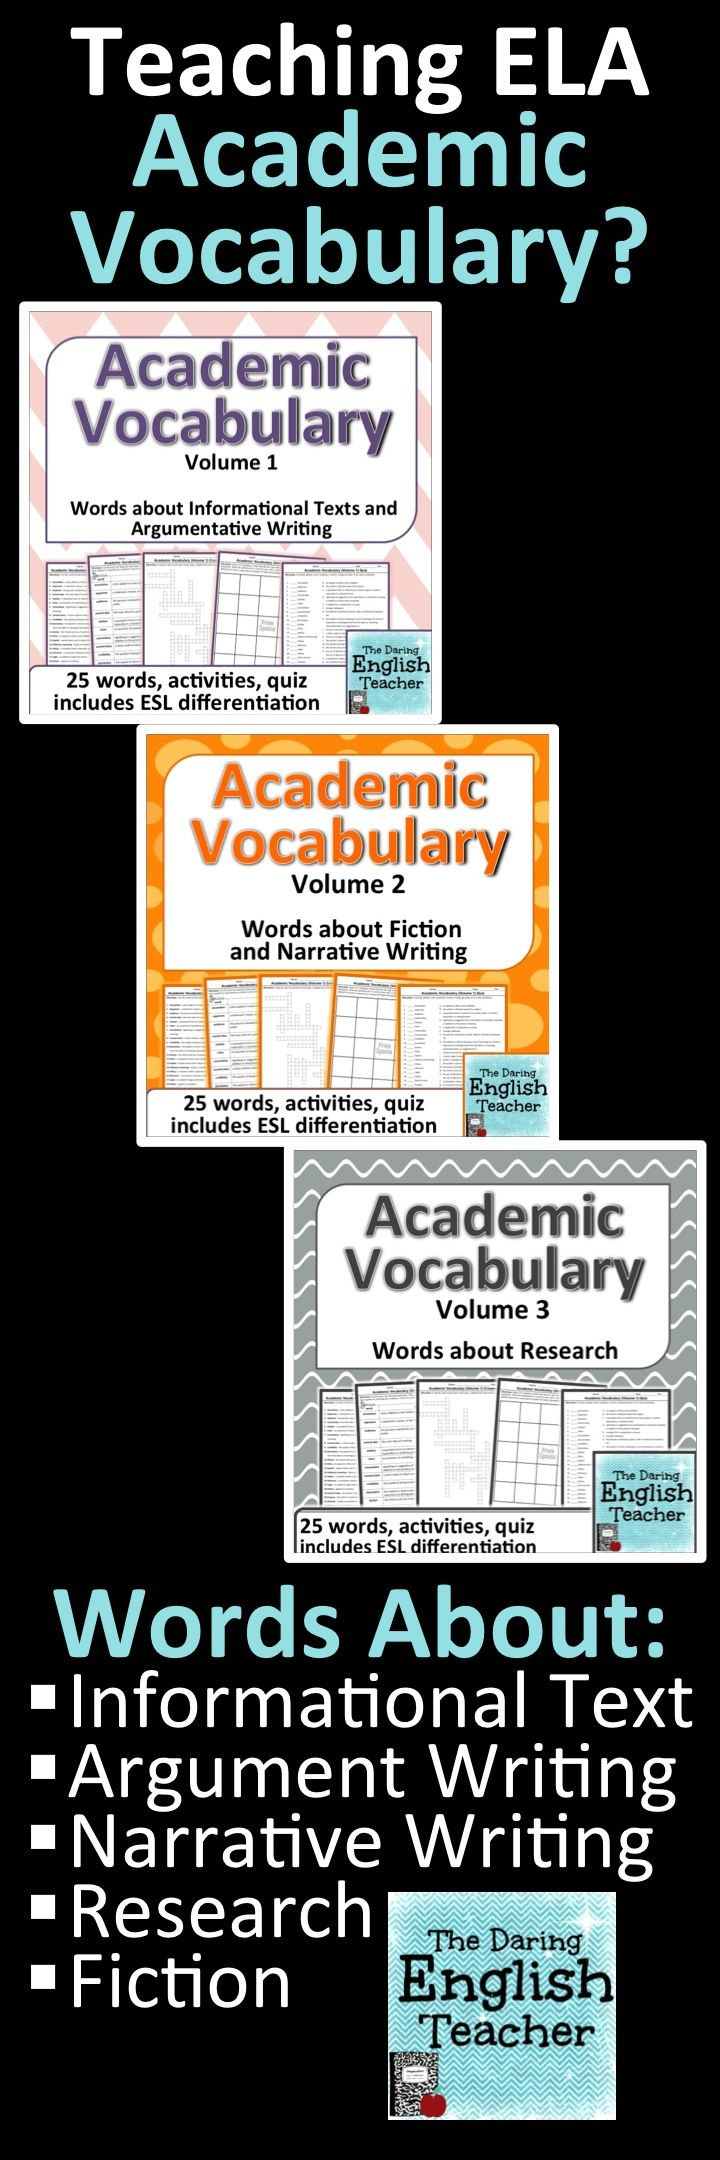 Academic vocabulary units for high school and middle school English students.